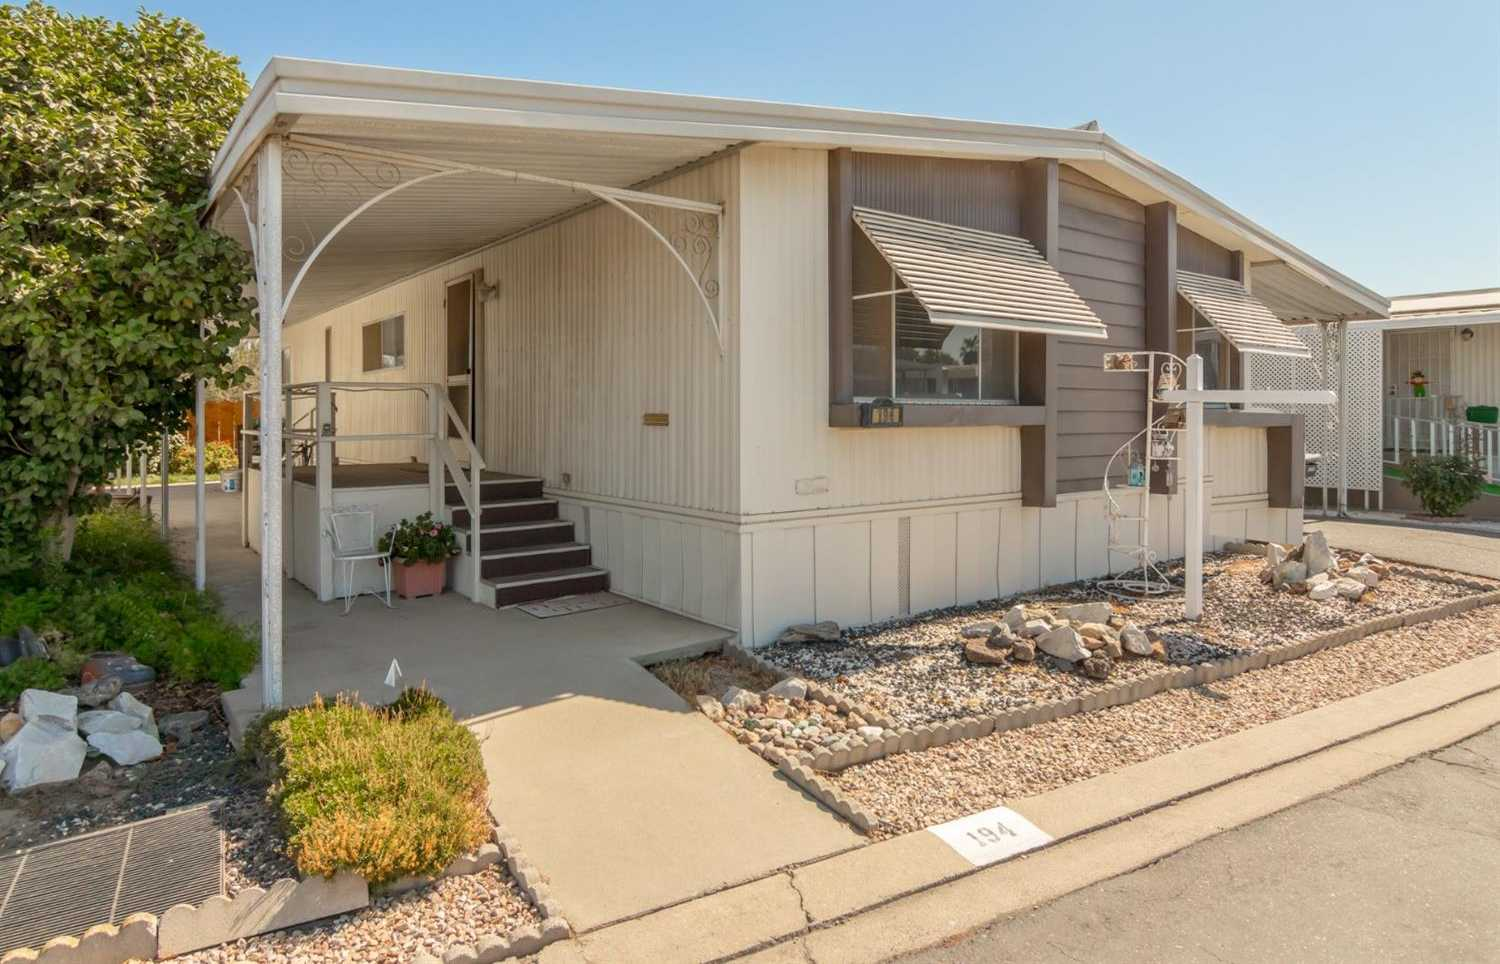 $40,000 - 3Br/2Ba -  for Sale in Escalon